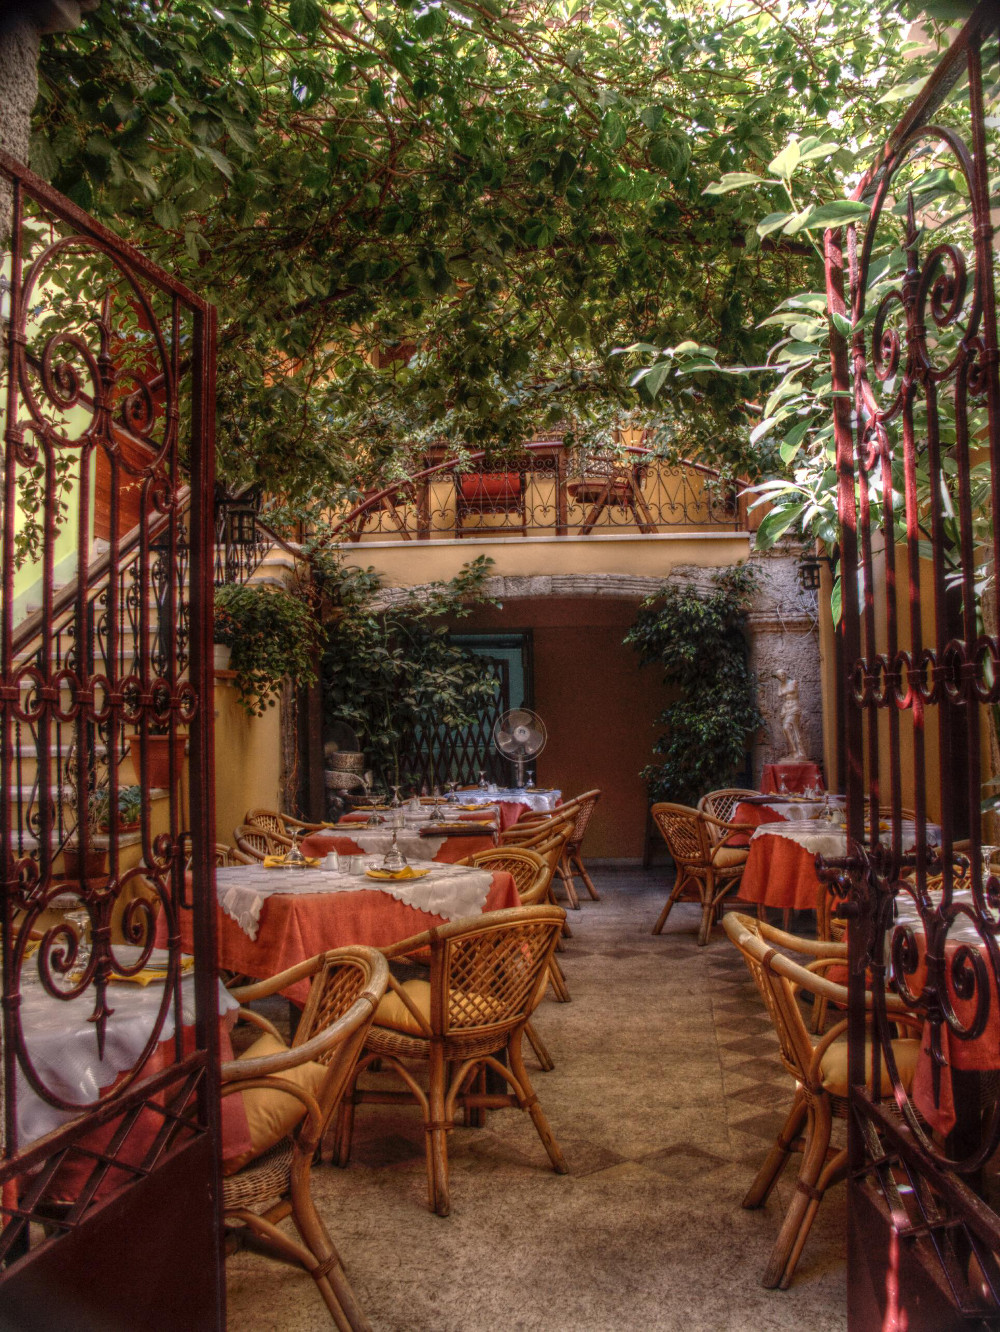 Restaurant in Crete Double-Barrelled Travel